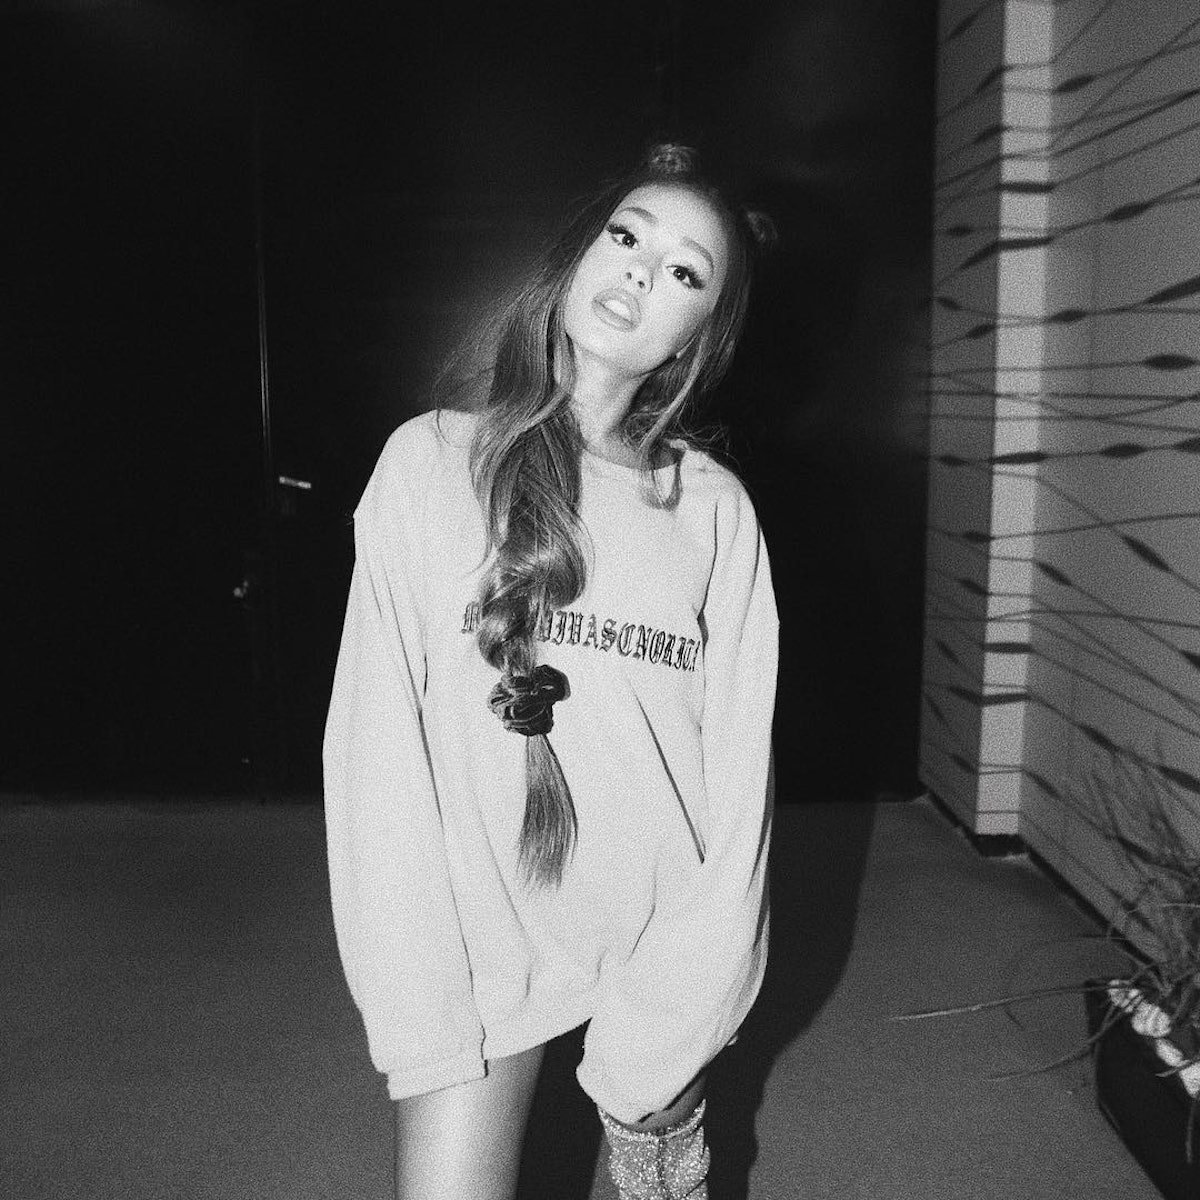 Ariana Grande channels the '80s with this scrunchie look.